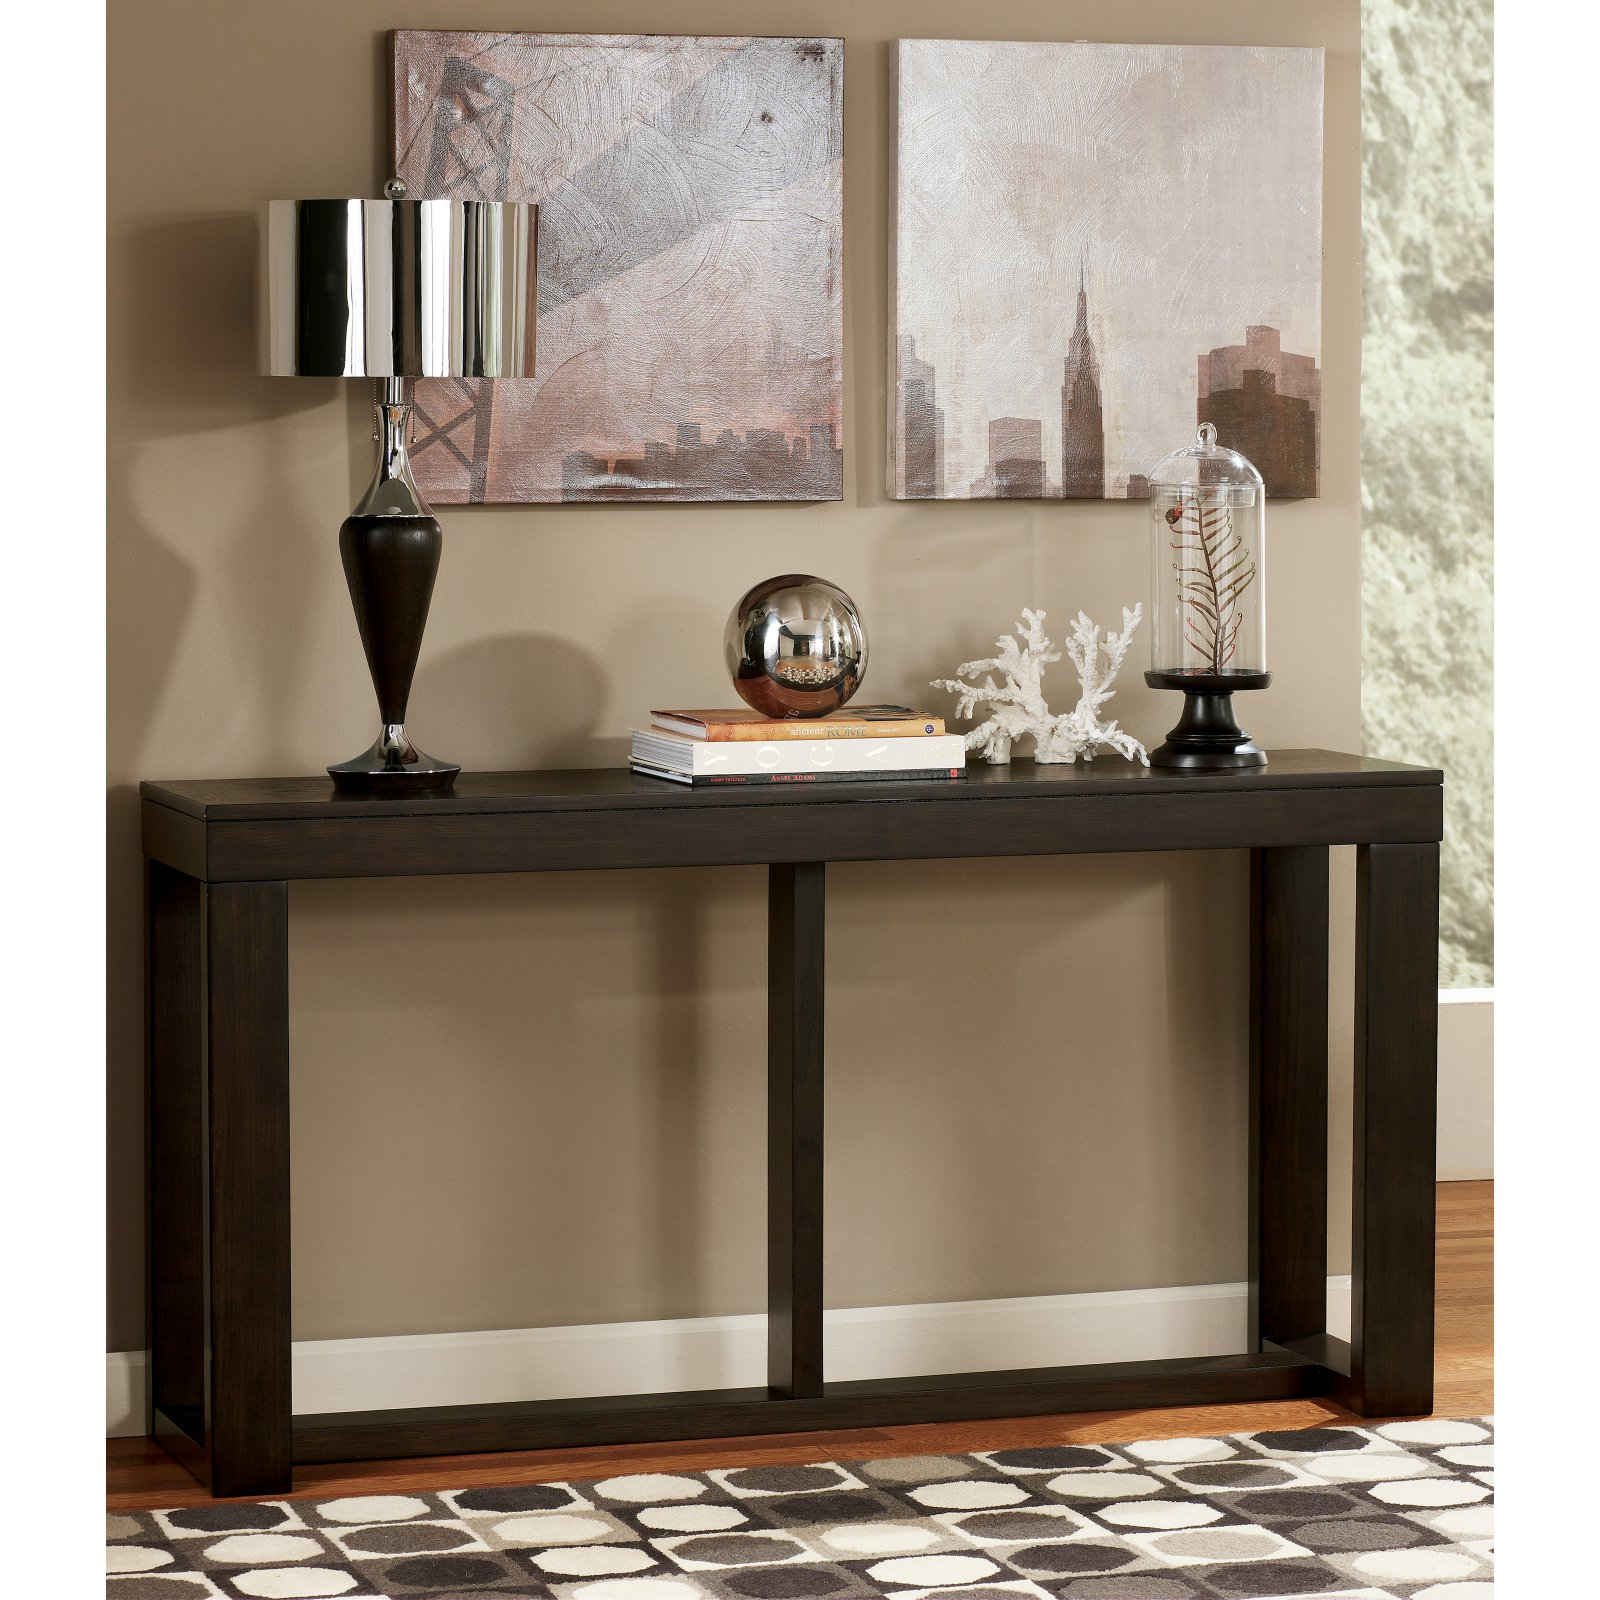 Signature Design by Ashley Watson Sofa Table by Ashley Furniture